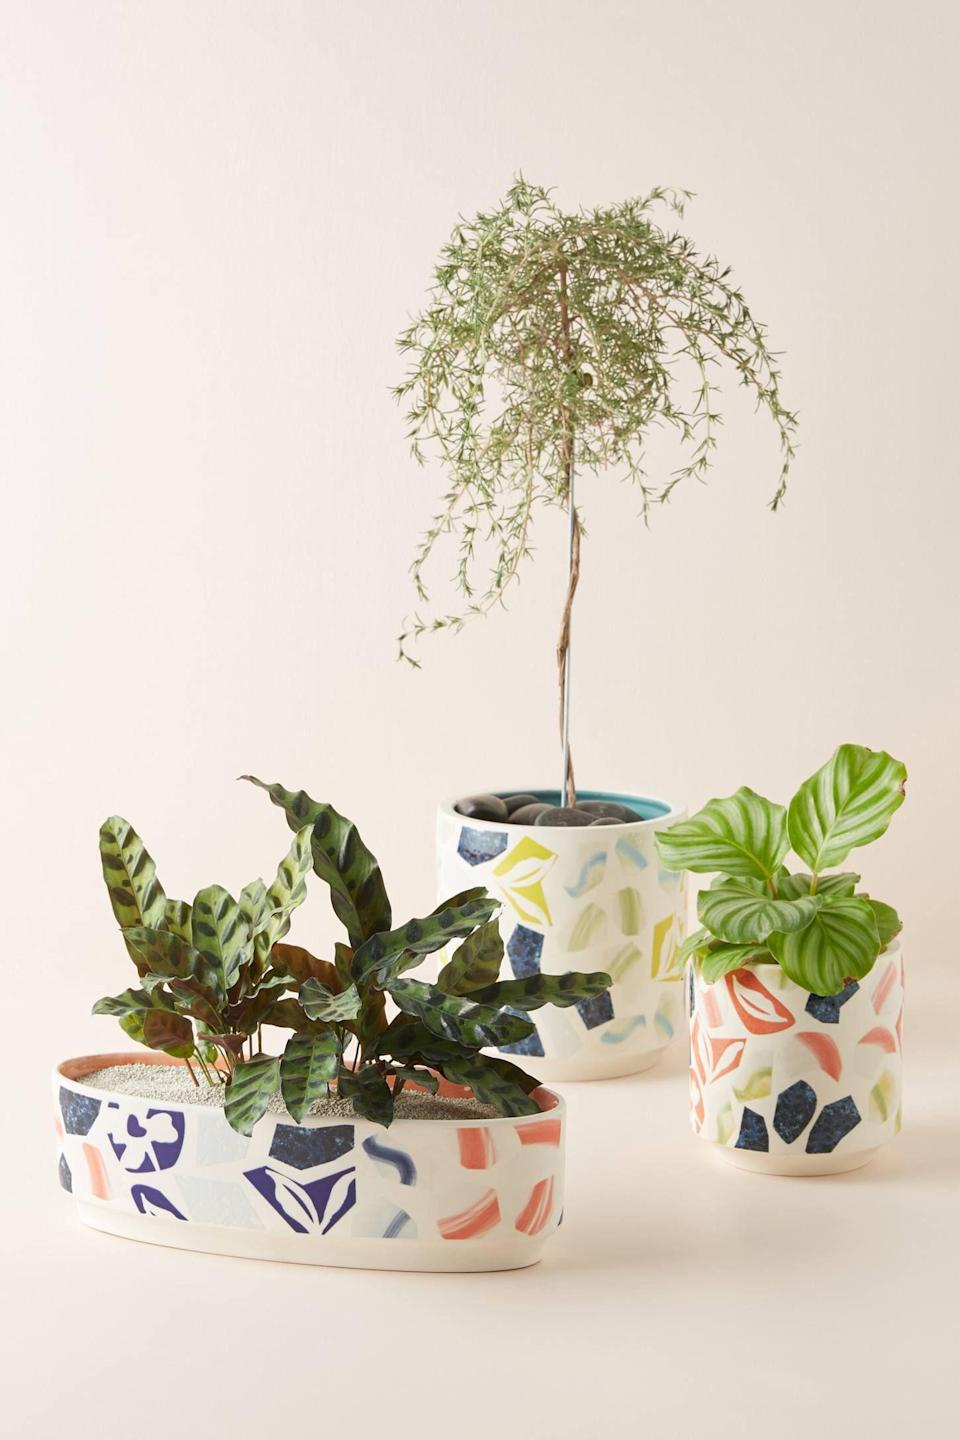 """<p><strong>Anthropologie</strong></p><p>anthropologie.com</p><p><strong>$35.20</strong></p><p><a href=""""https://go.redirectingat.com?id=74968X1596630&url=https%3A%2F%2Fwww.anthropologie.com%2Fshop%2Fandrea-planter&sref=https%3A%2F%2Fwww.goodhousekeeping.com%2Fhome%2Fdecorating-ideas%2Fg37159808%2Fbest-home-products-july-2021%2F"""" rel=""""nofollow noopener"""" target=""""_blank"""" data-ylk=""""slk:Shop Now"""" class=""""link rapid-noclick-resp"""">Shop Now</a></p><p>It's always a good idea to bring the outdoors in. You'll have no issues doing just that if this terrazzo-inspired planter is part of your green thumb goal.</p>"""